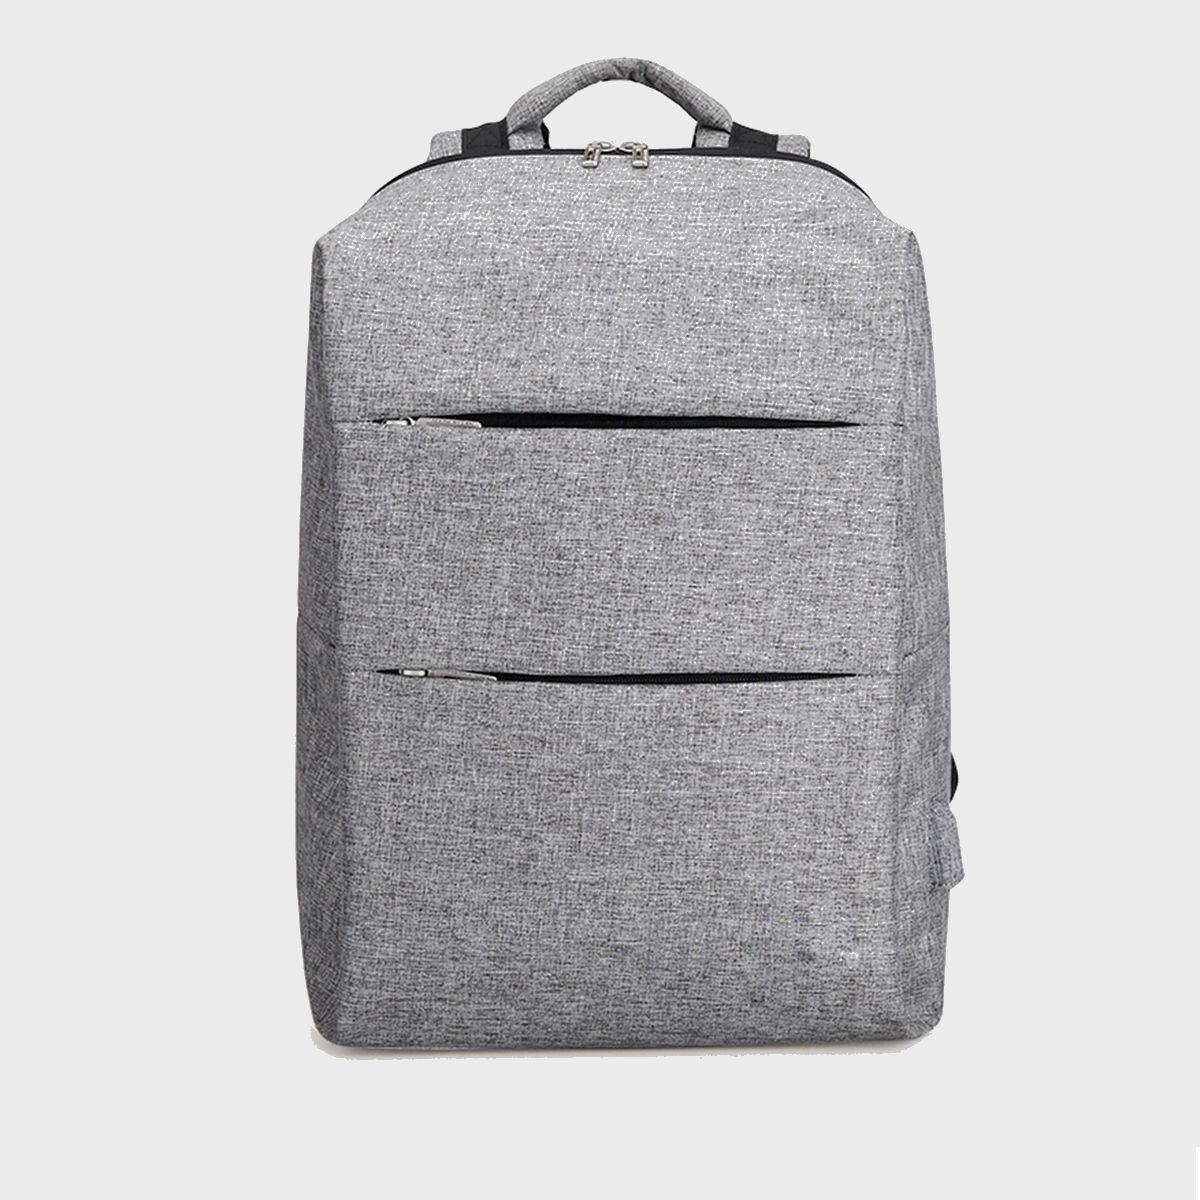 Modernist EX Series 2017 Water Resistant Backpack with USB Charging ...